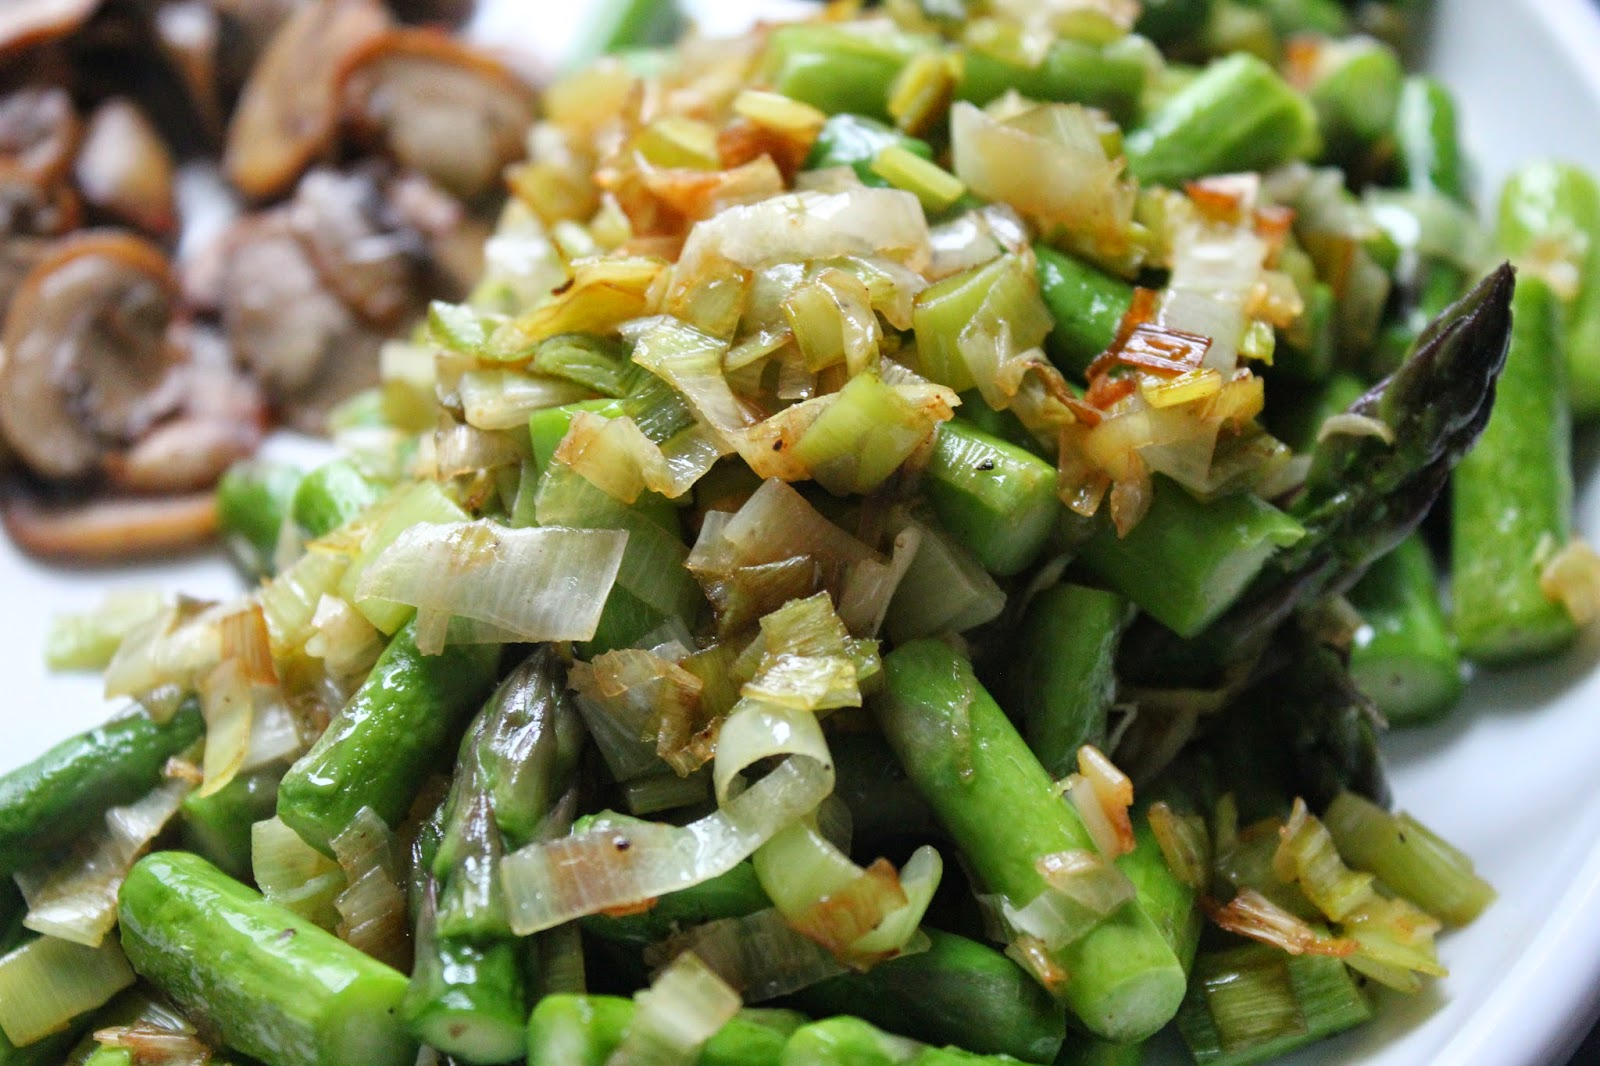 Sauteed leeks and asparagus